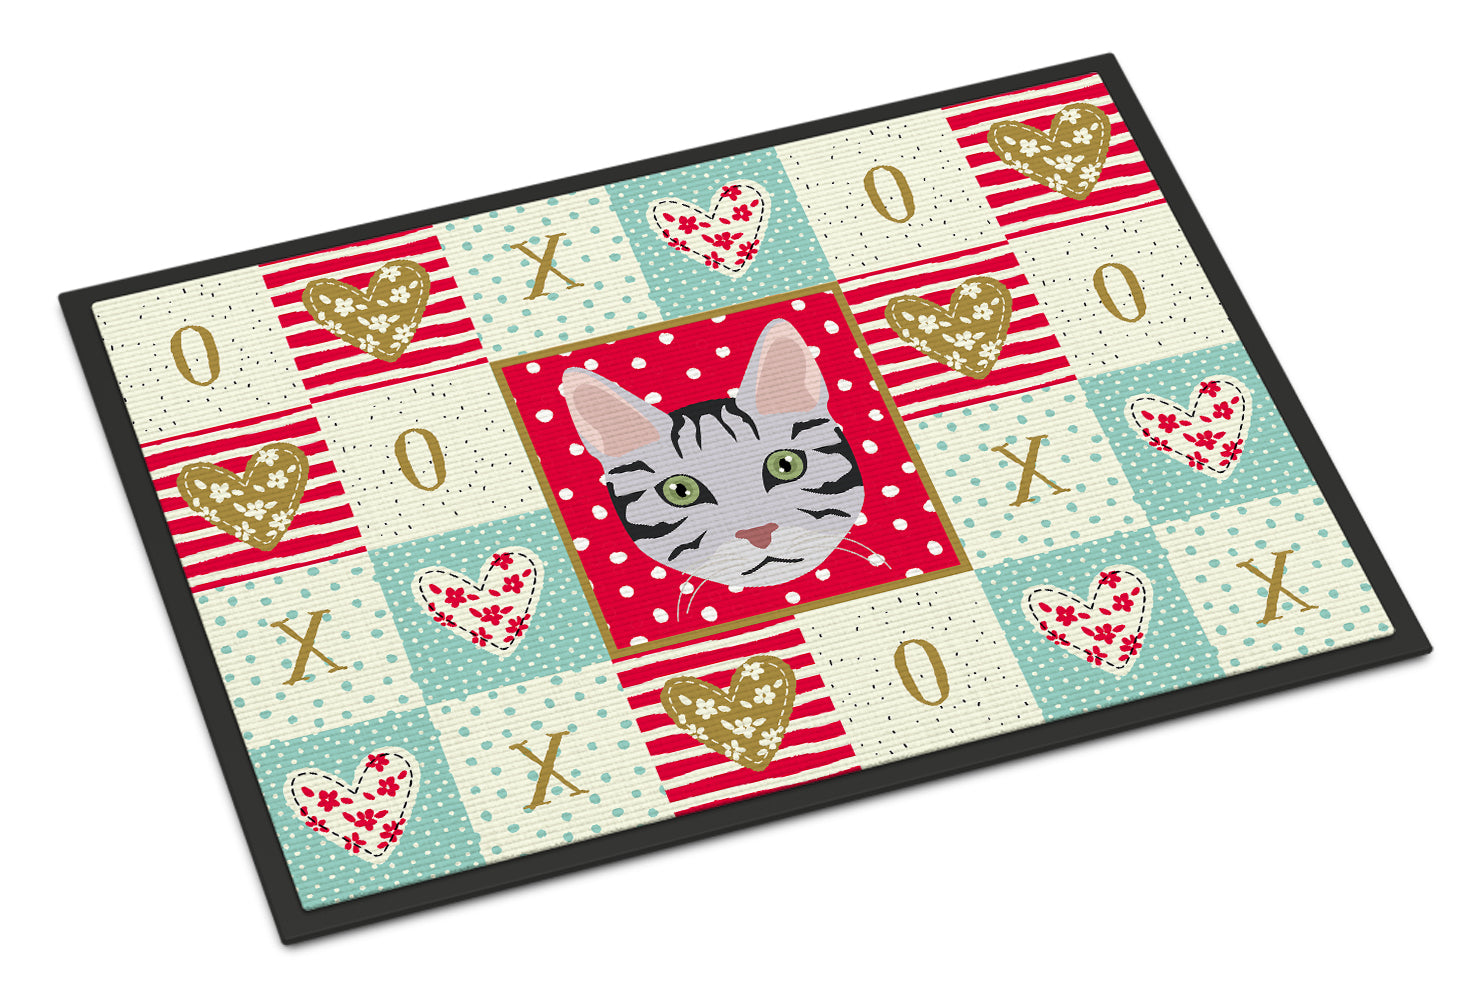 Serengeti Cat Love Indoor or Outdoor Mat 18x27 CK5161MAT by Caroline's Treasures